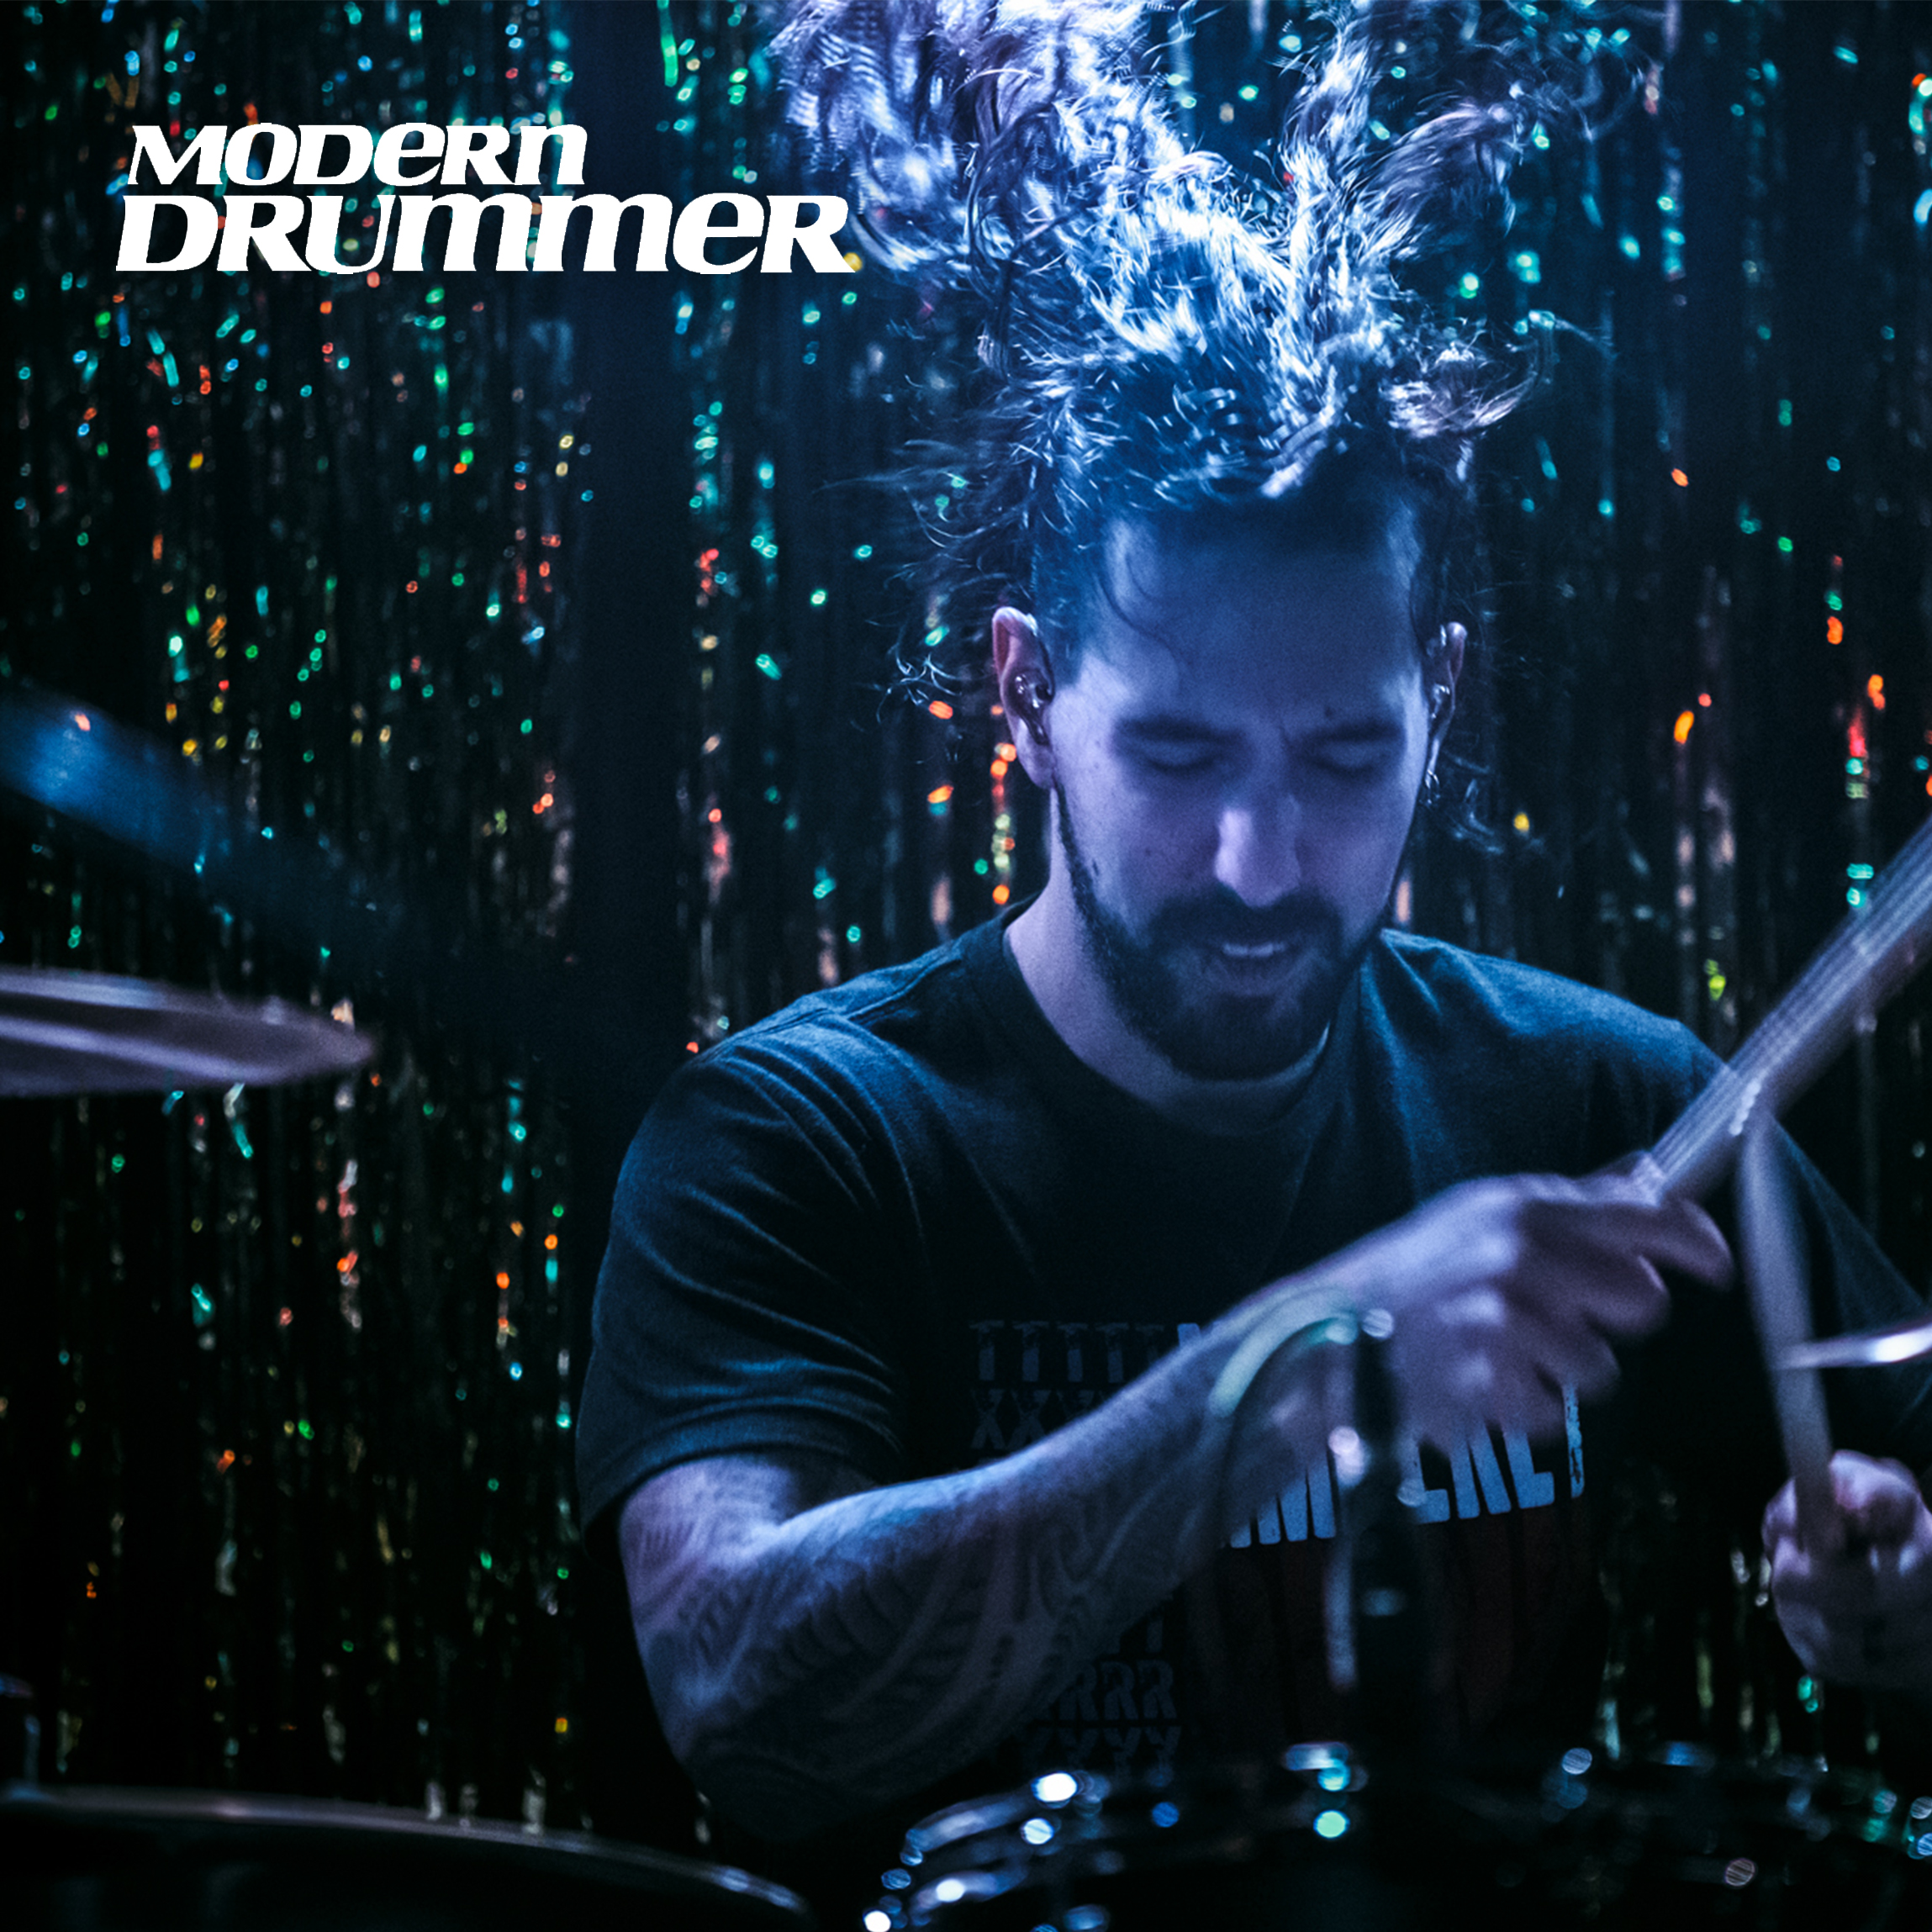 MODERN DRUMMER features Rom Gov - January 3rd, 2019